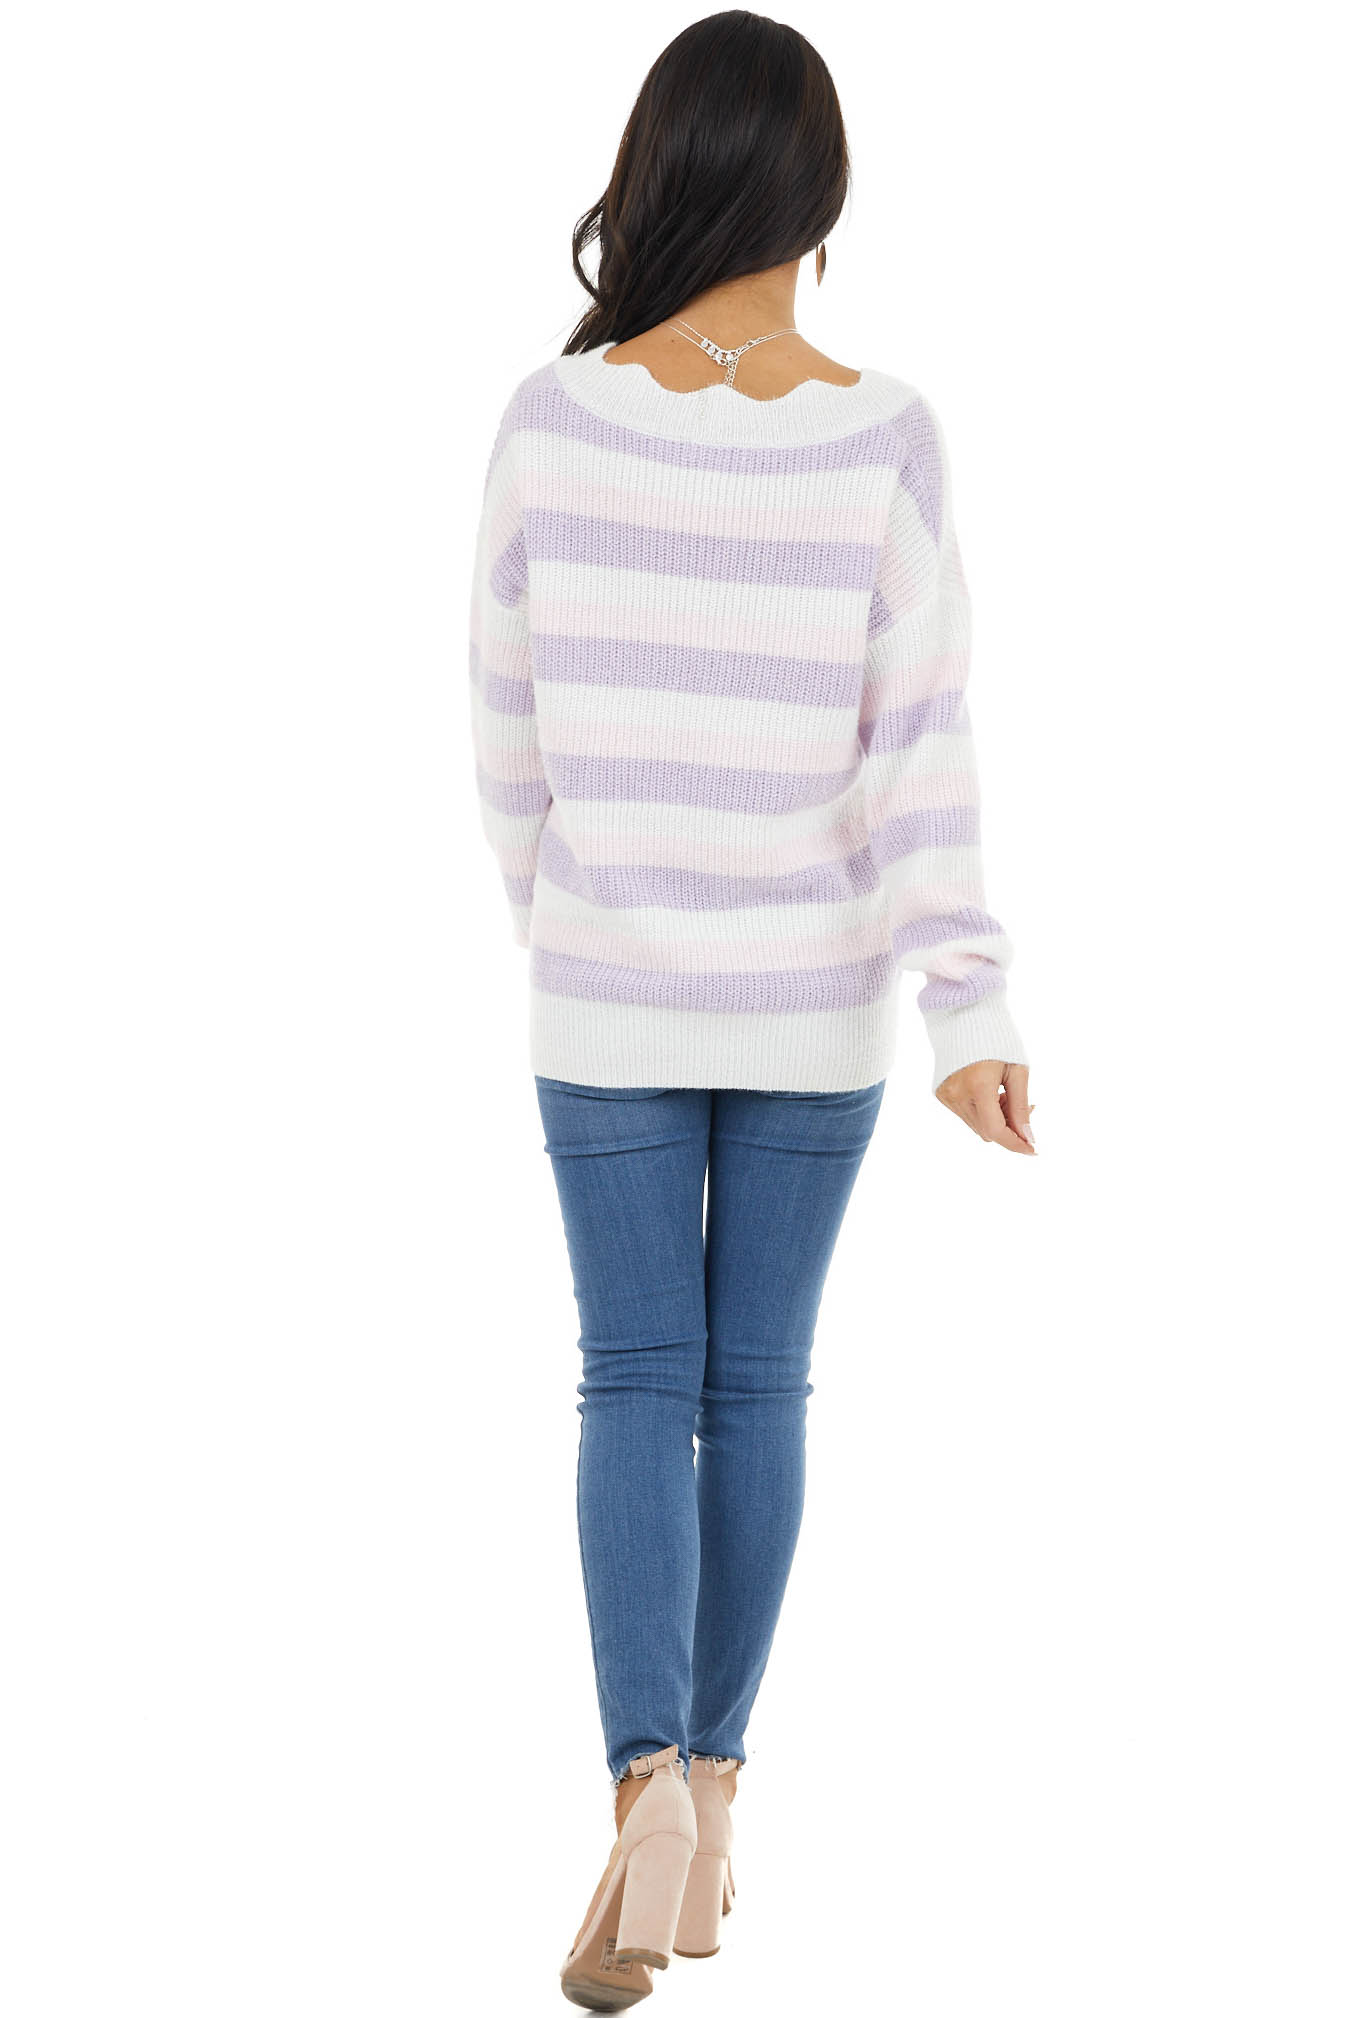 Lavender and Blush Sparkly Knit Sweater with Scalloped Neck